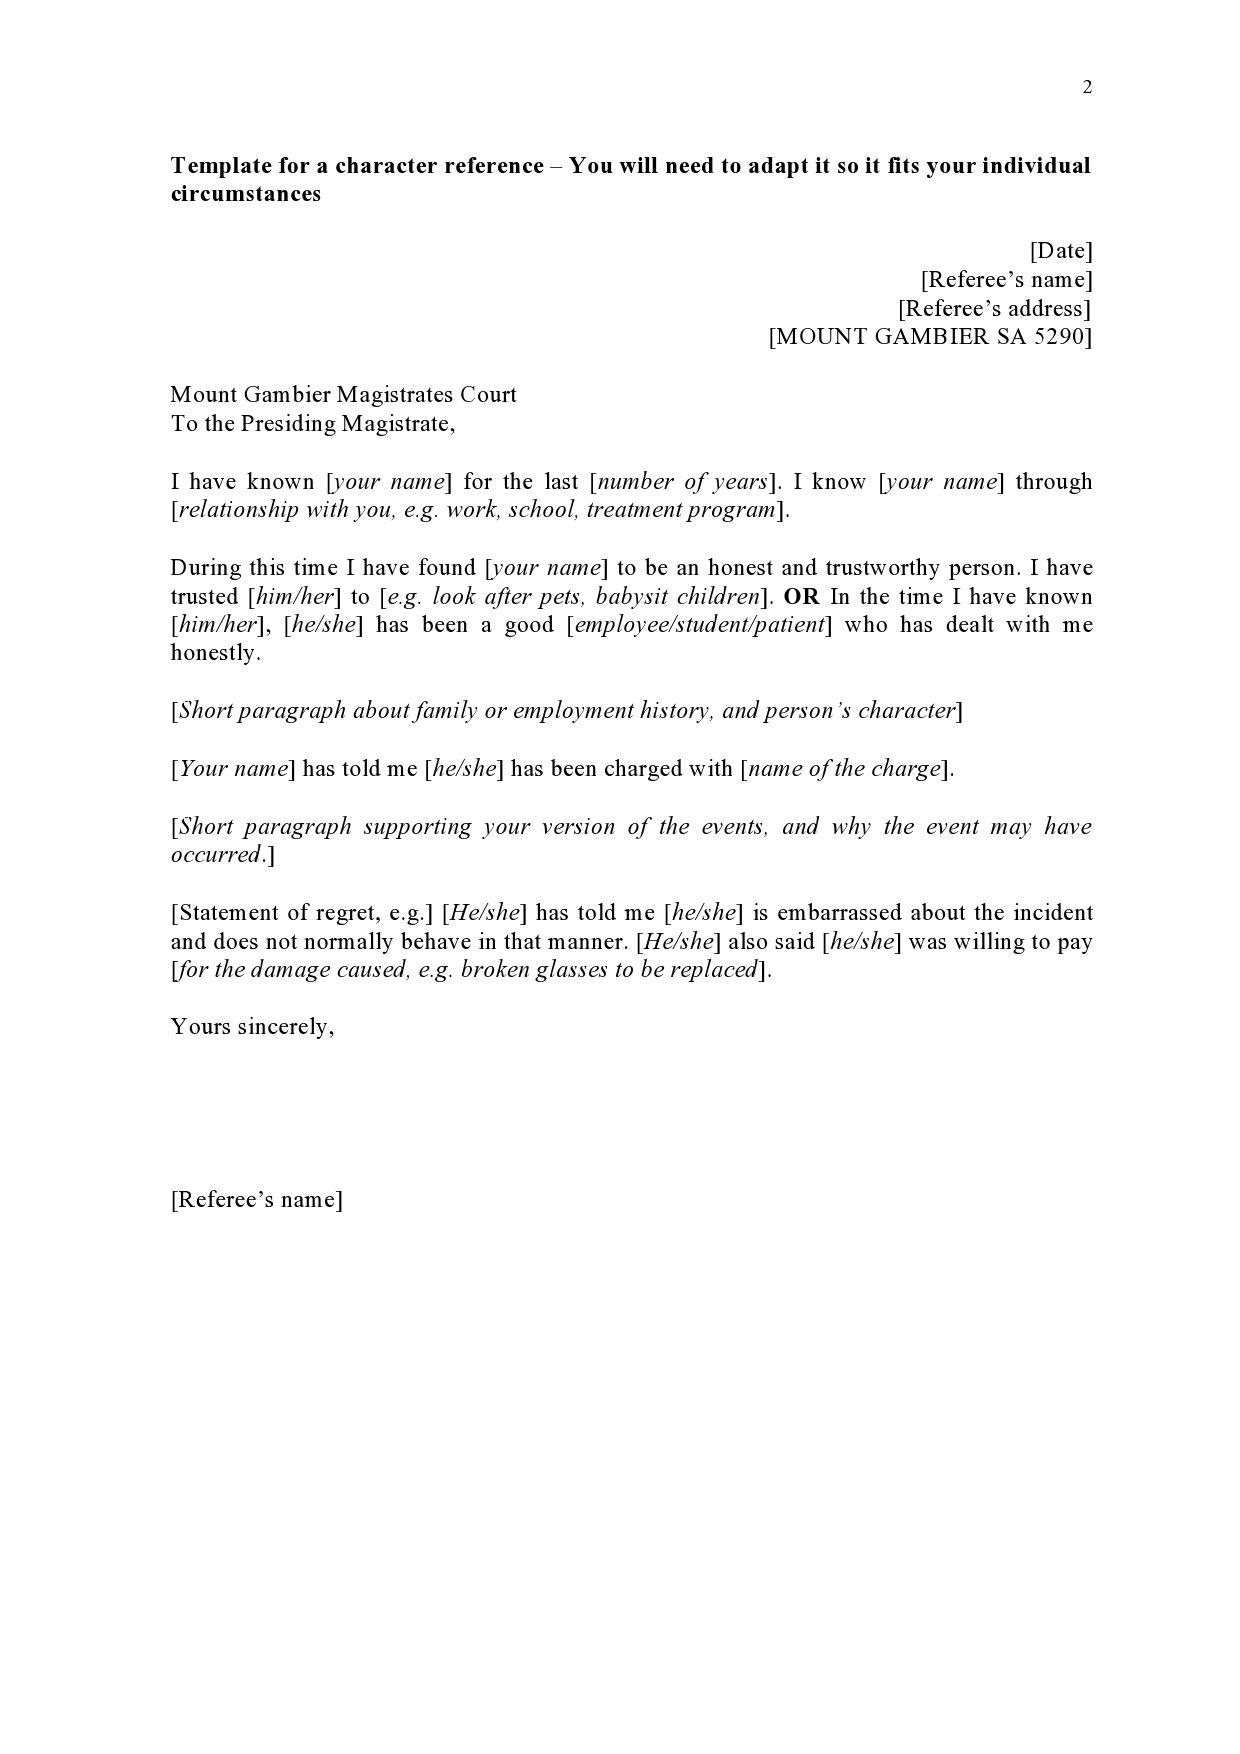 002 Breathtaking Free Reference Letter Template Word Inspiration  Personal For EmploymentFull